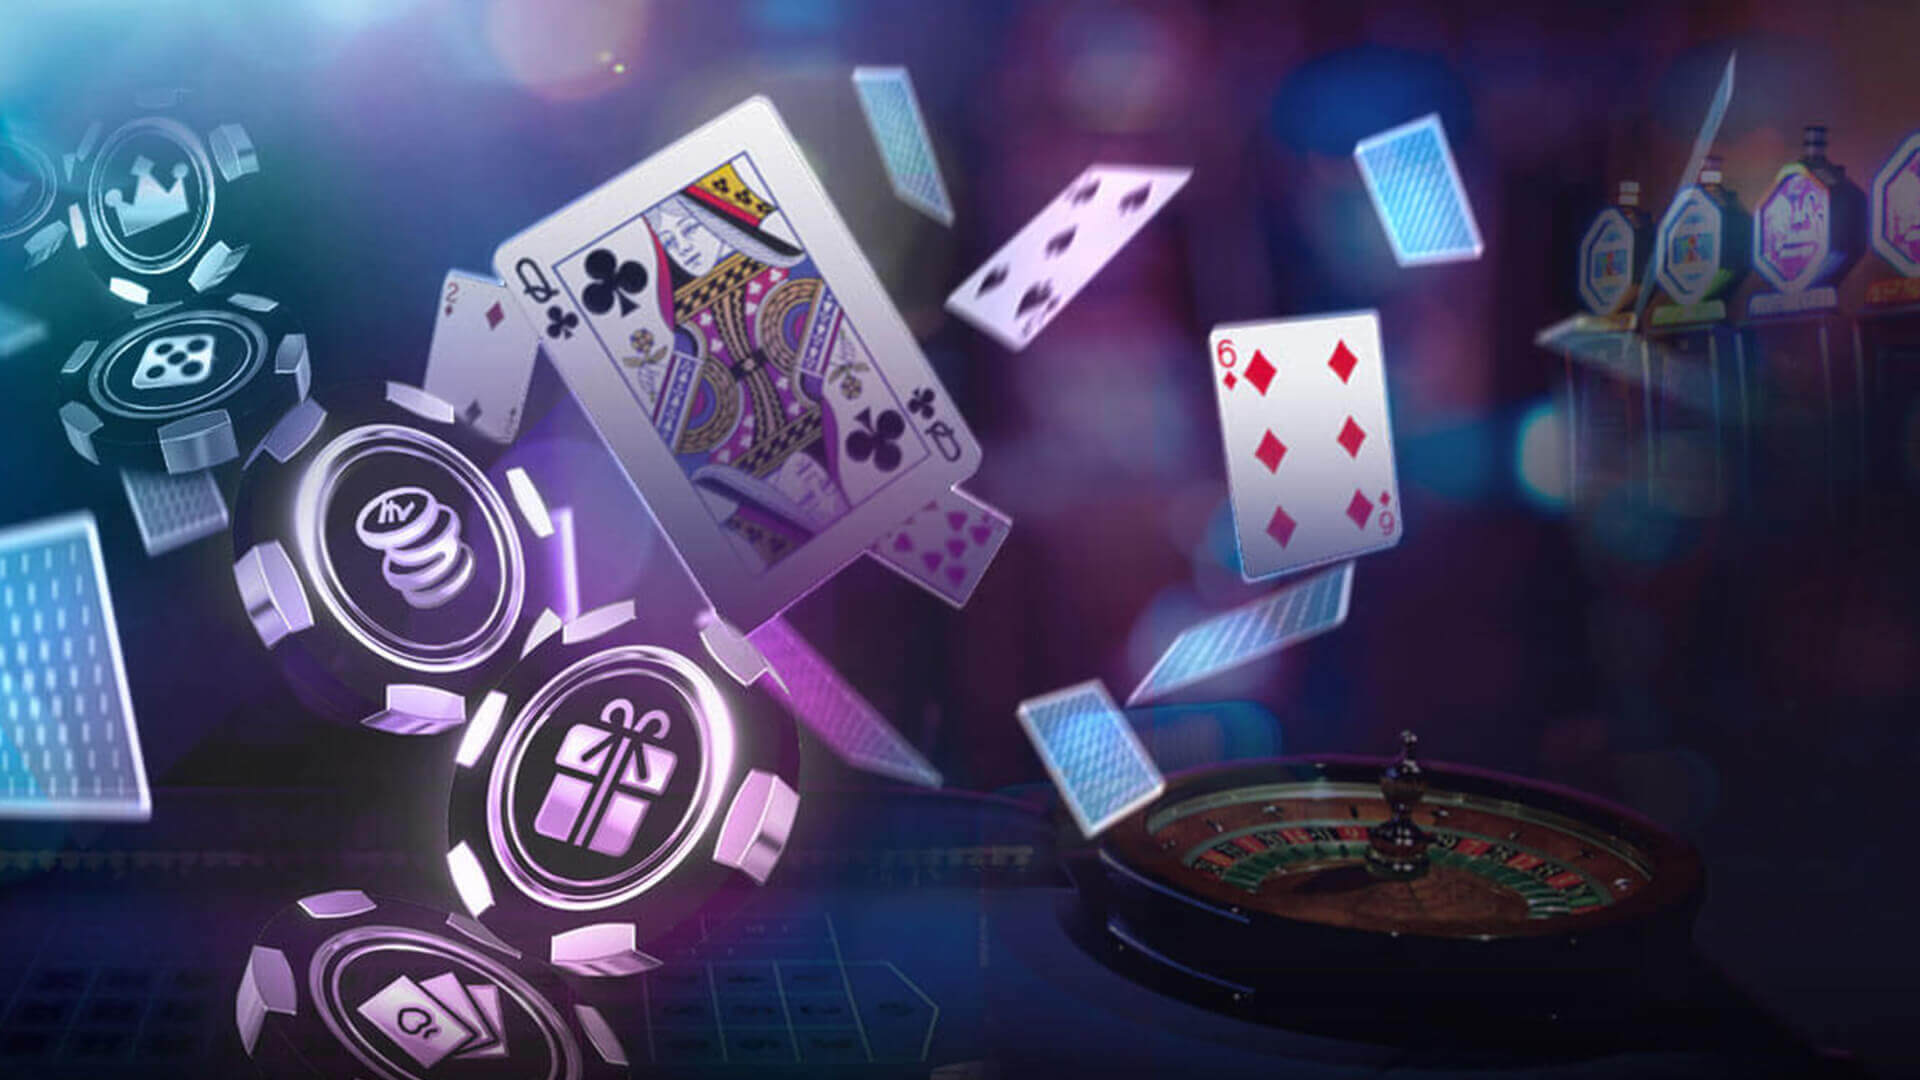 Get a subscription right now at the top 10 trusted online poker sites (10 situs poker online terpercaya)! post thumbnail image